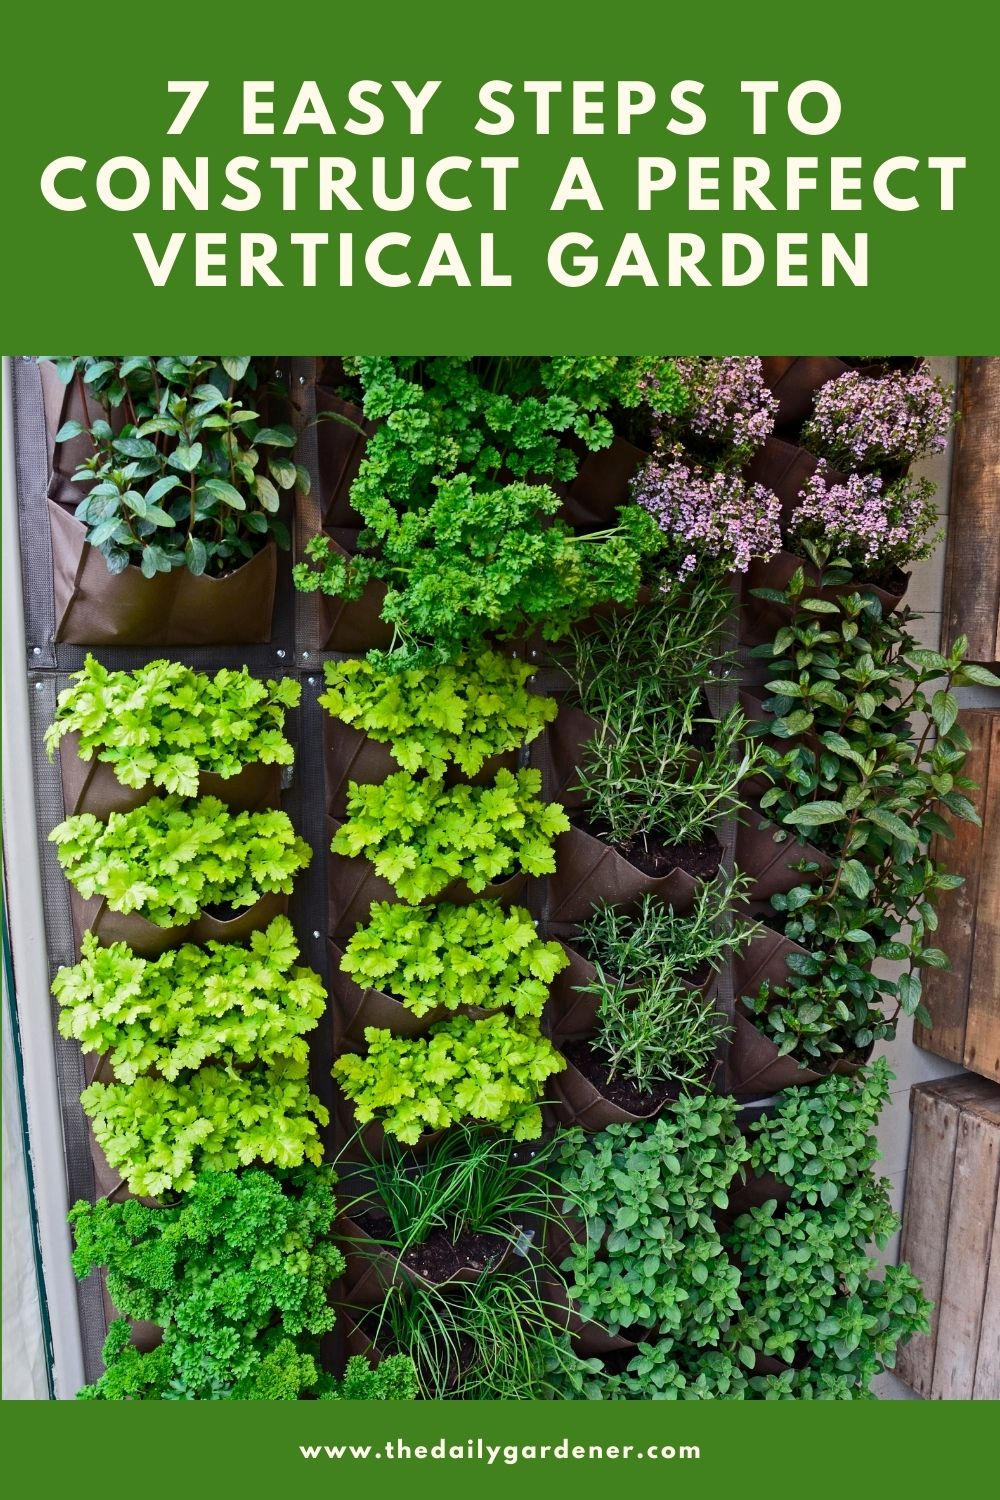 7 Easy Steps to Construct a Perfect Vertical Garden 17 Easy Steps to Construct a Perfect Vertical Garden 1